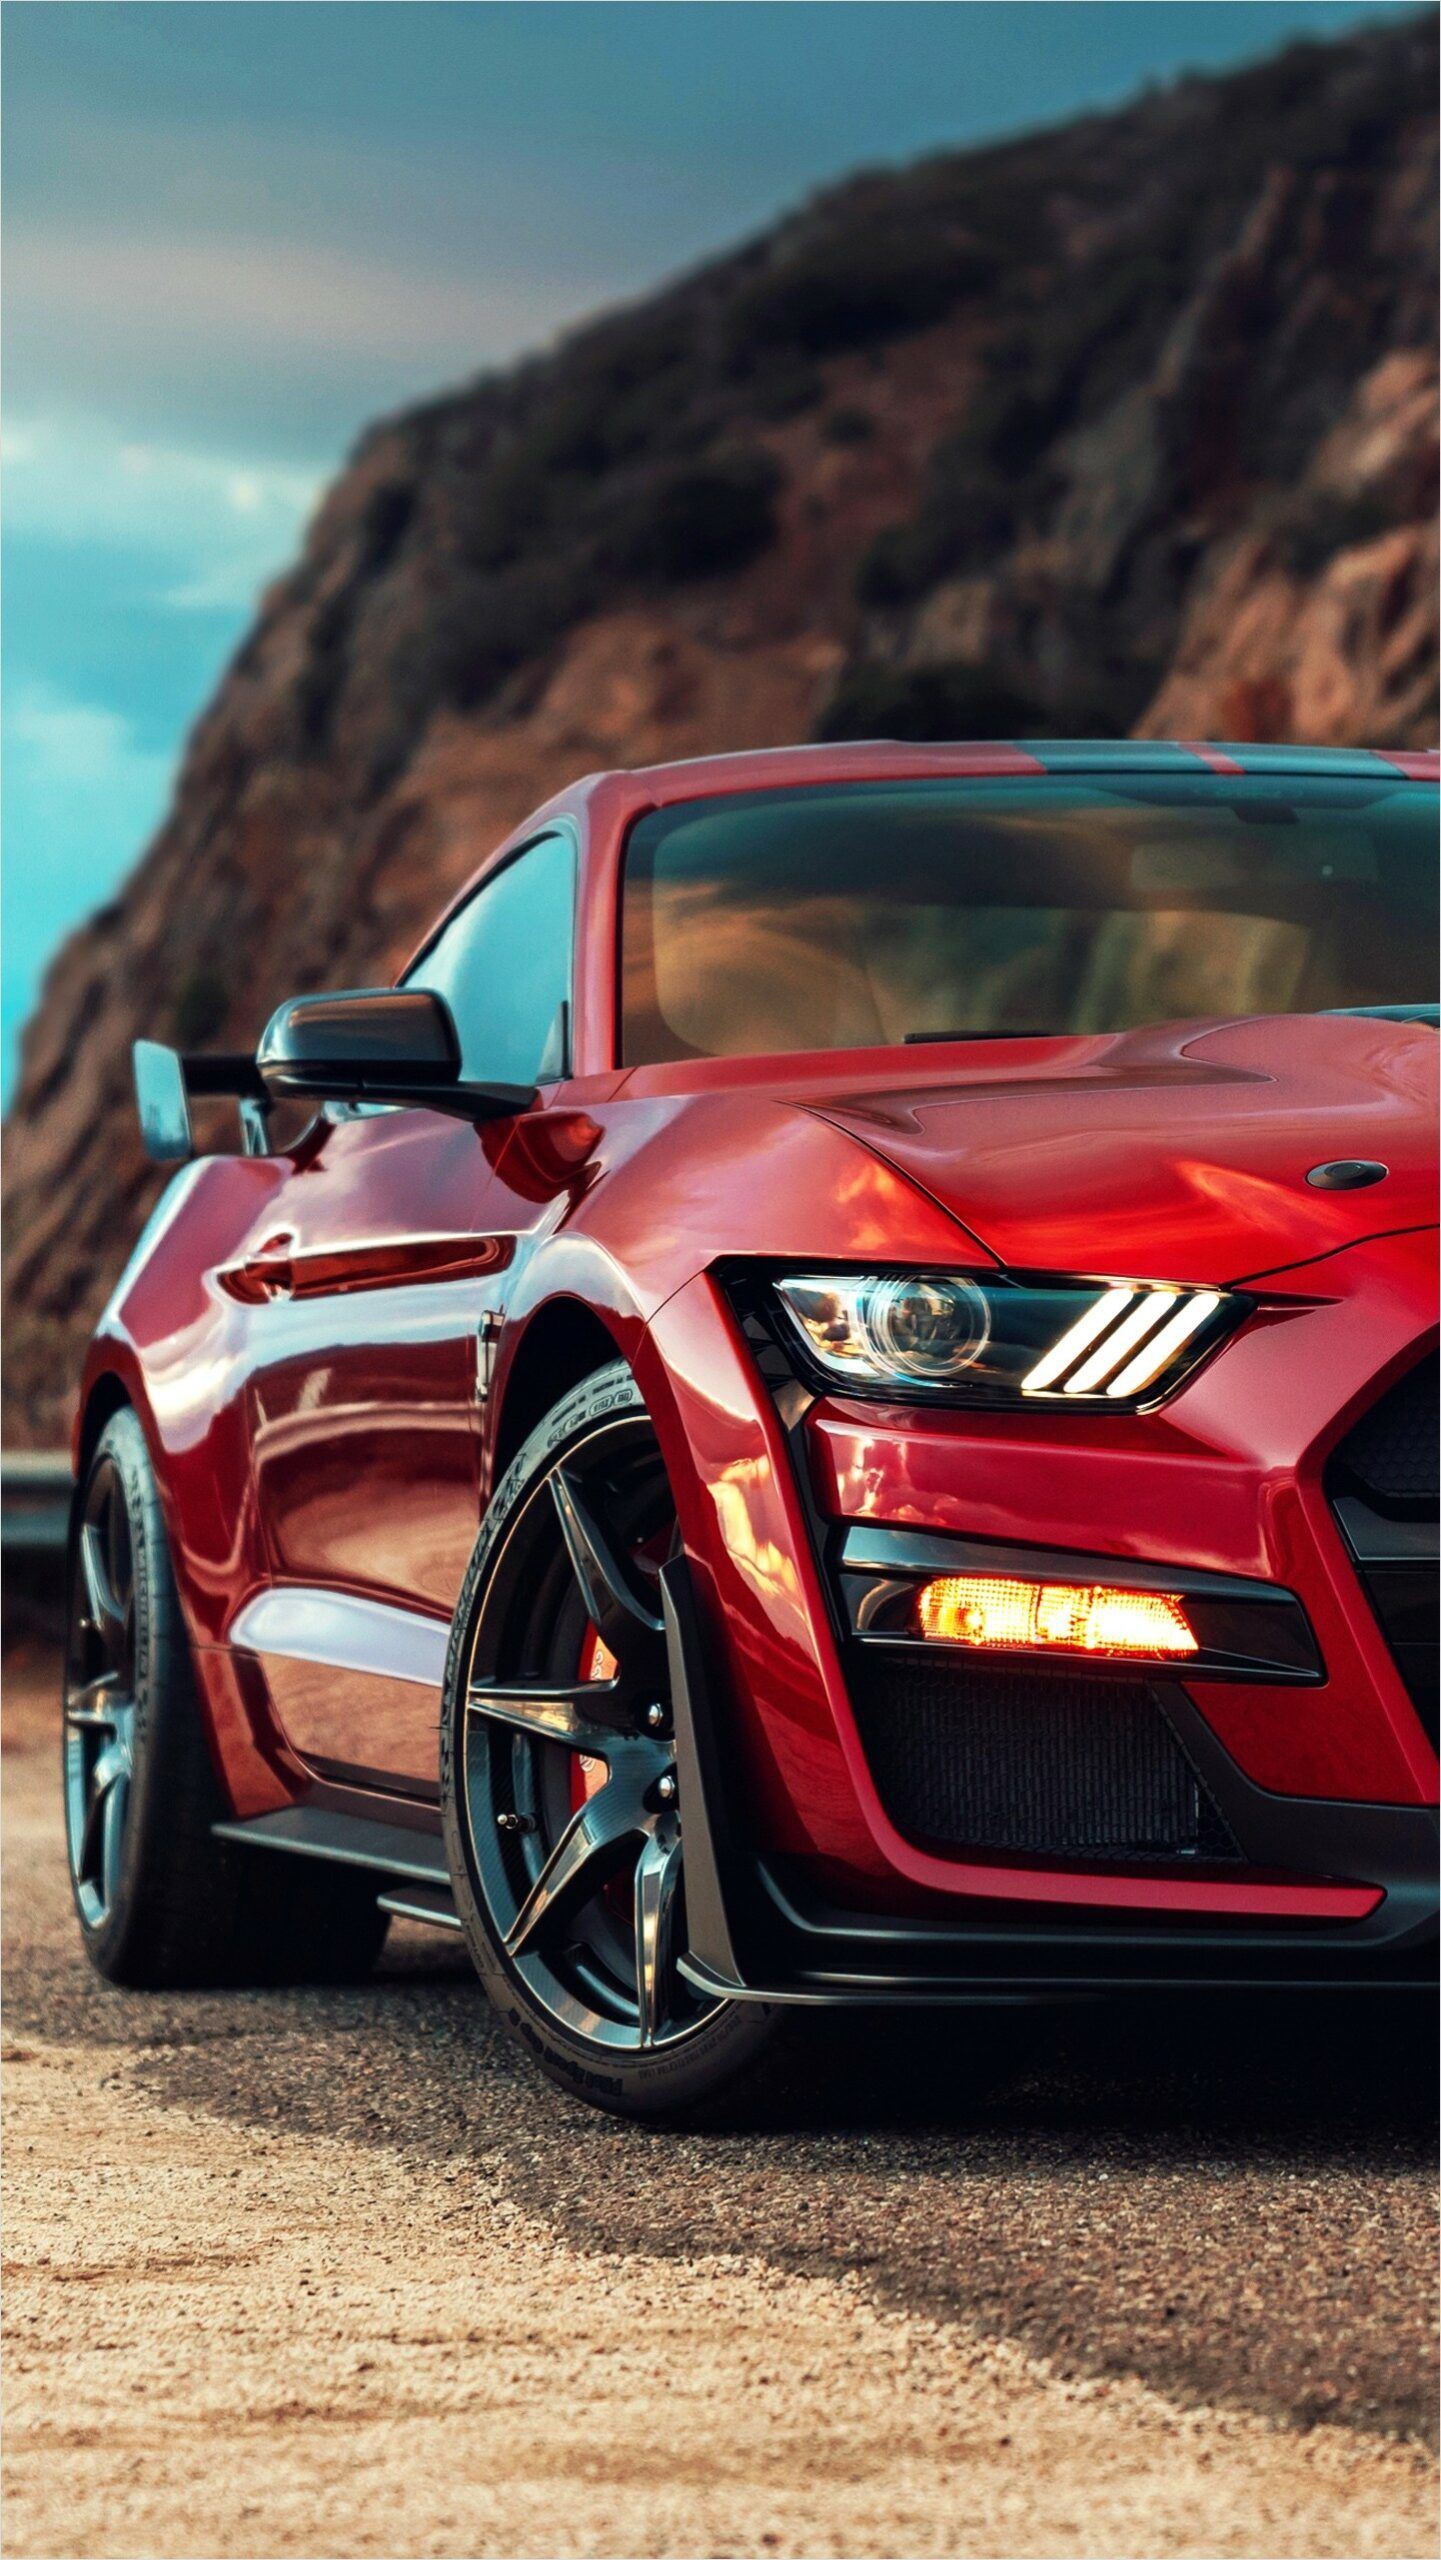 2020 Mustang Gt500 Wallpaper 4k in 2020 Ford mustang shelby 1441x2560